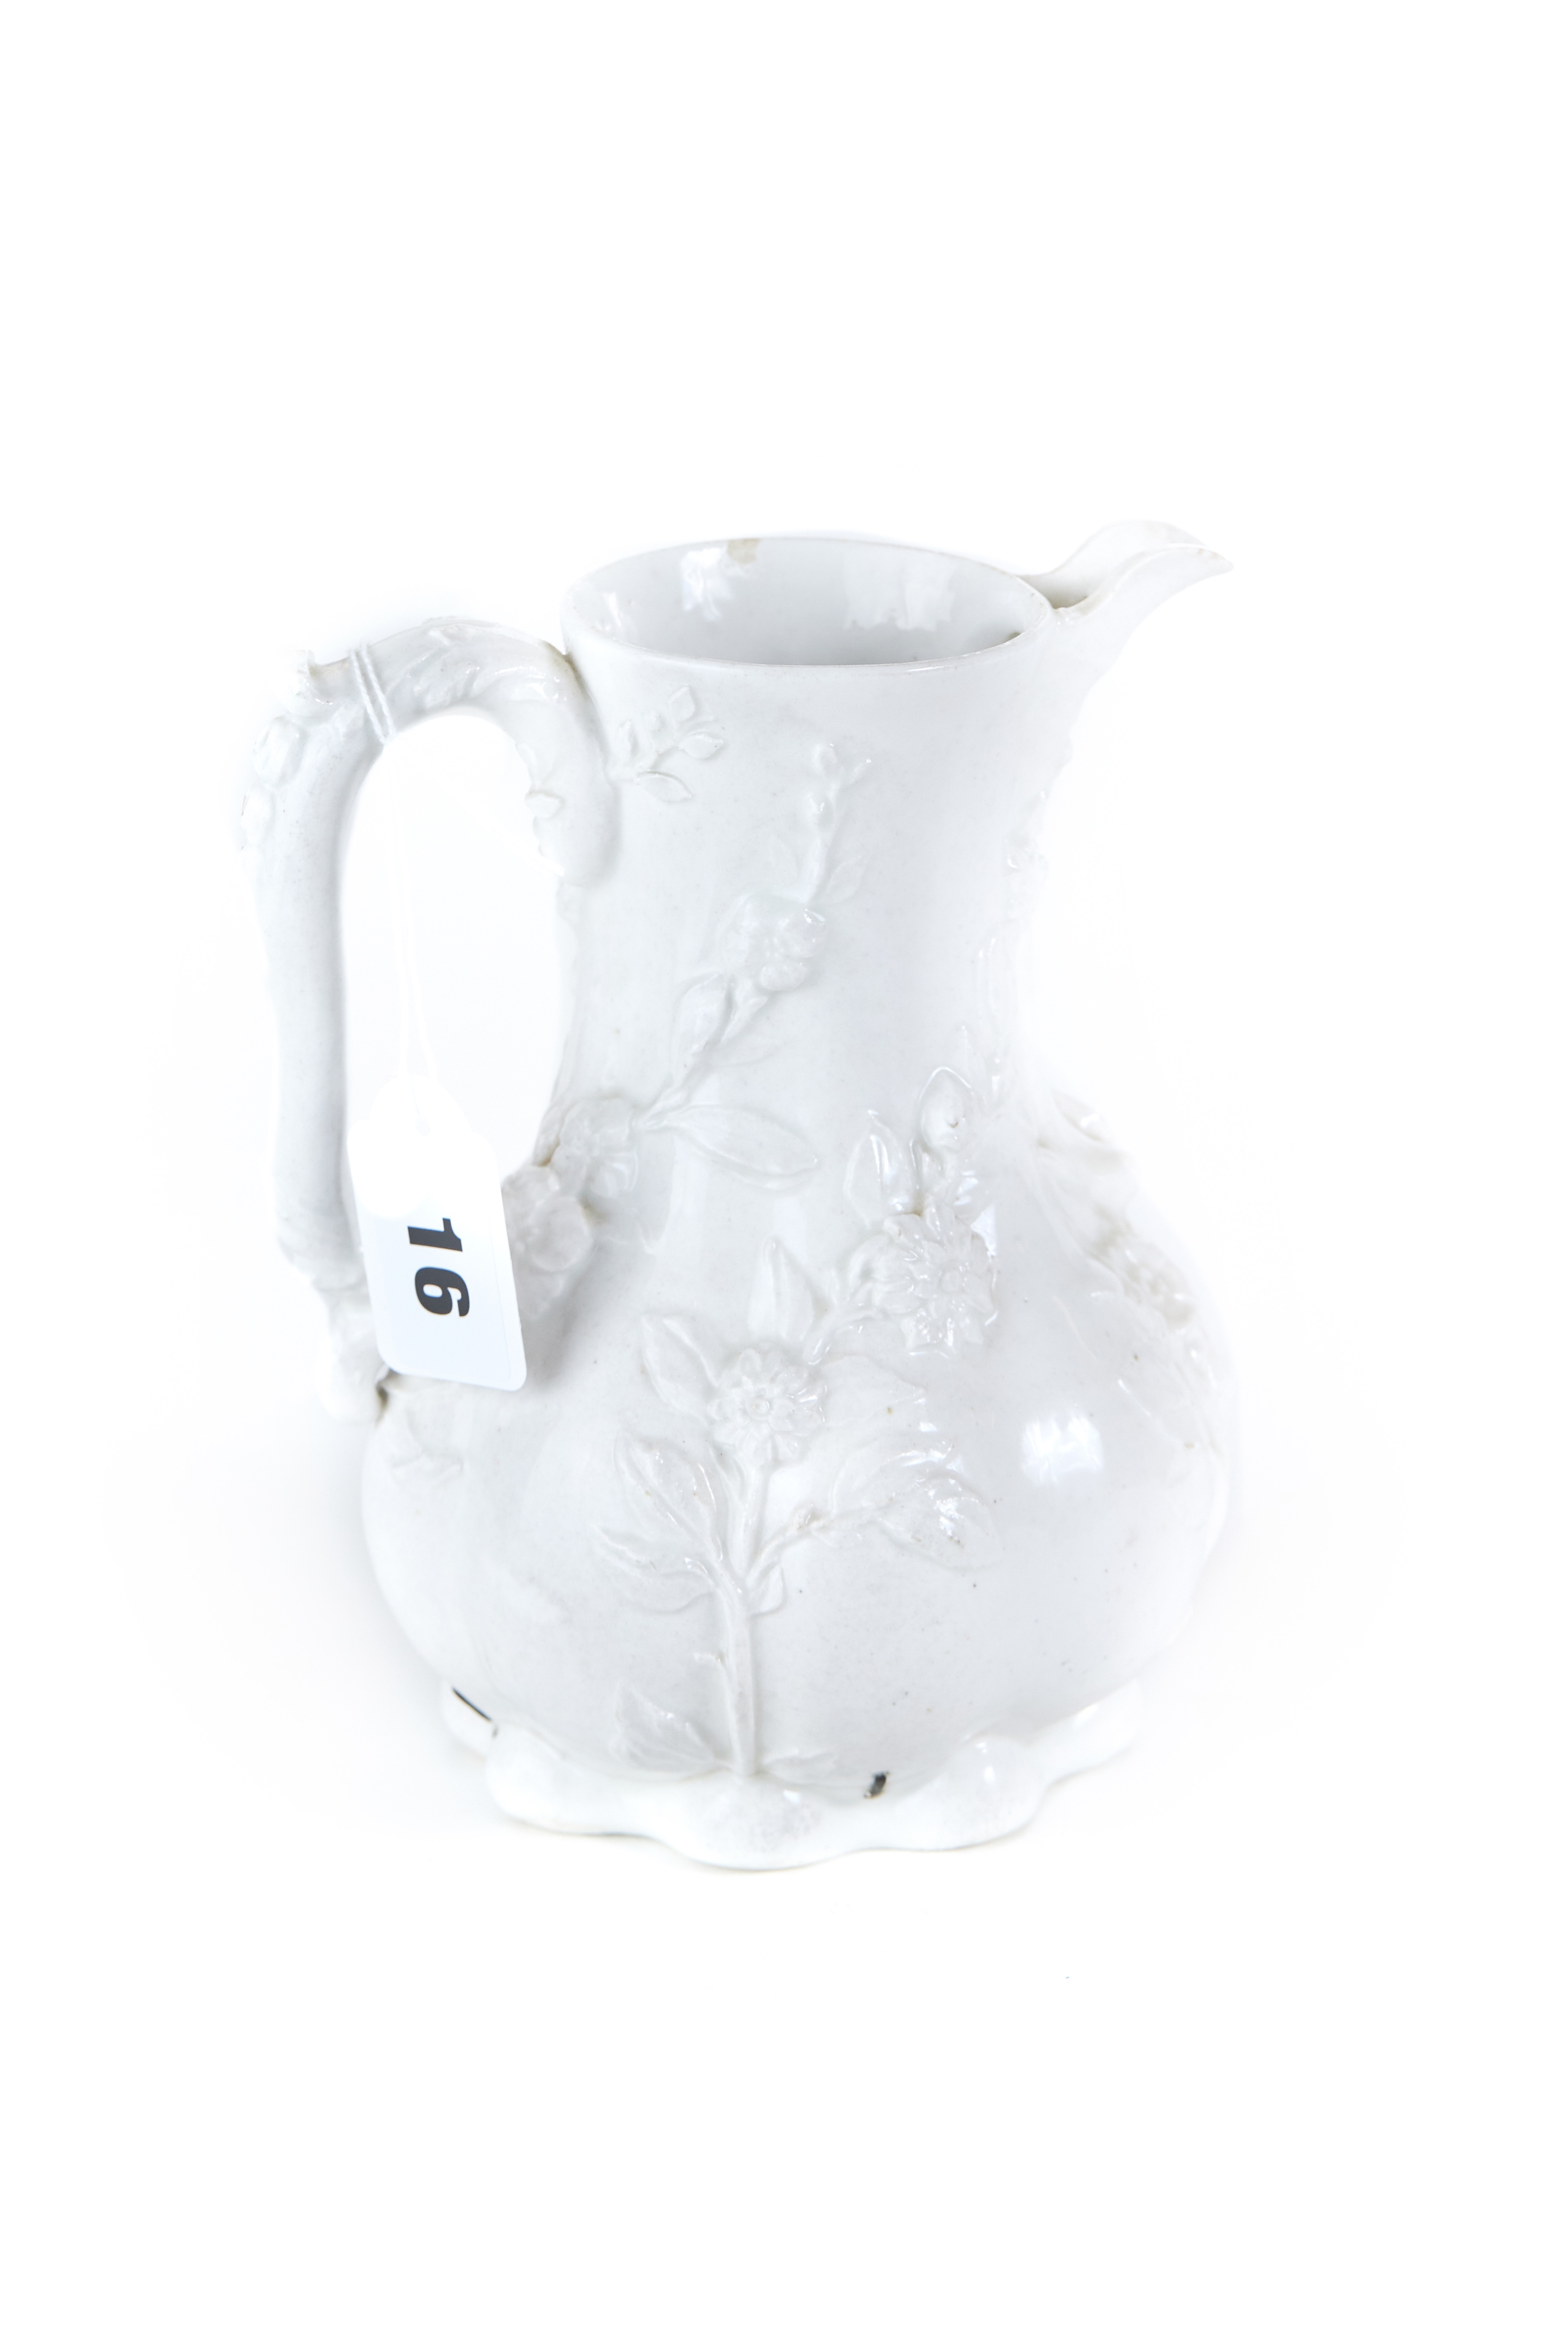 AN 18TH CENTURY CHELSEA WHITE GLAZED PORCELAIN COFFEE POT with raised moulded floral decoration and